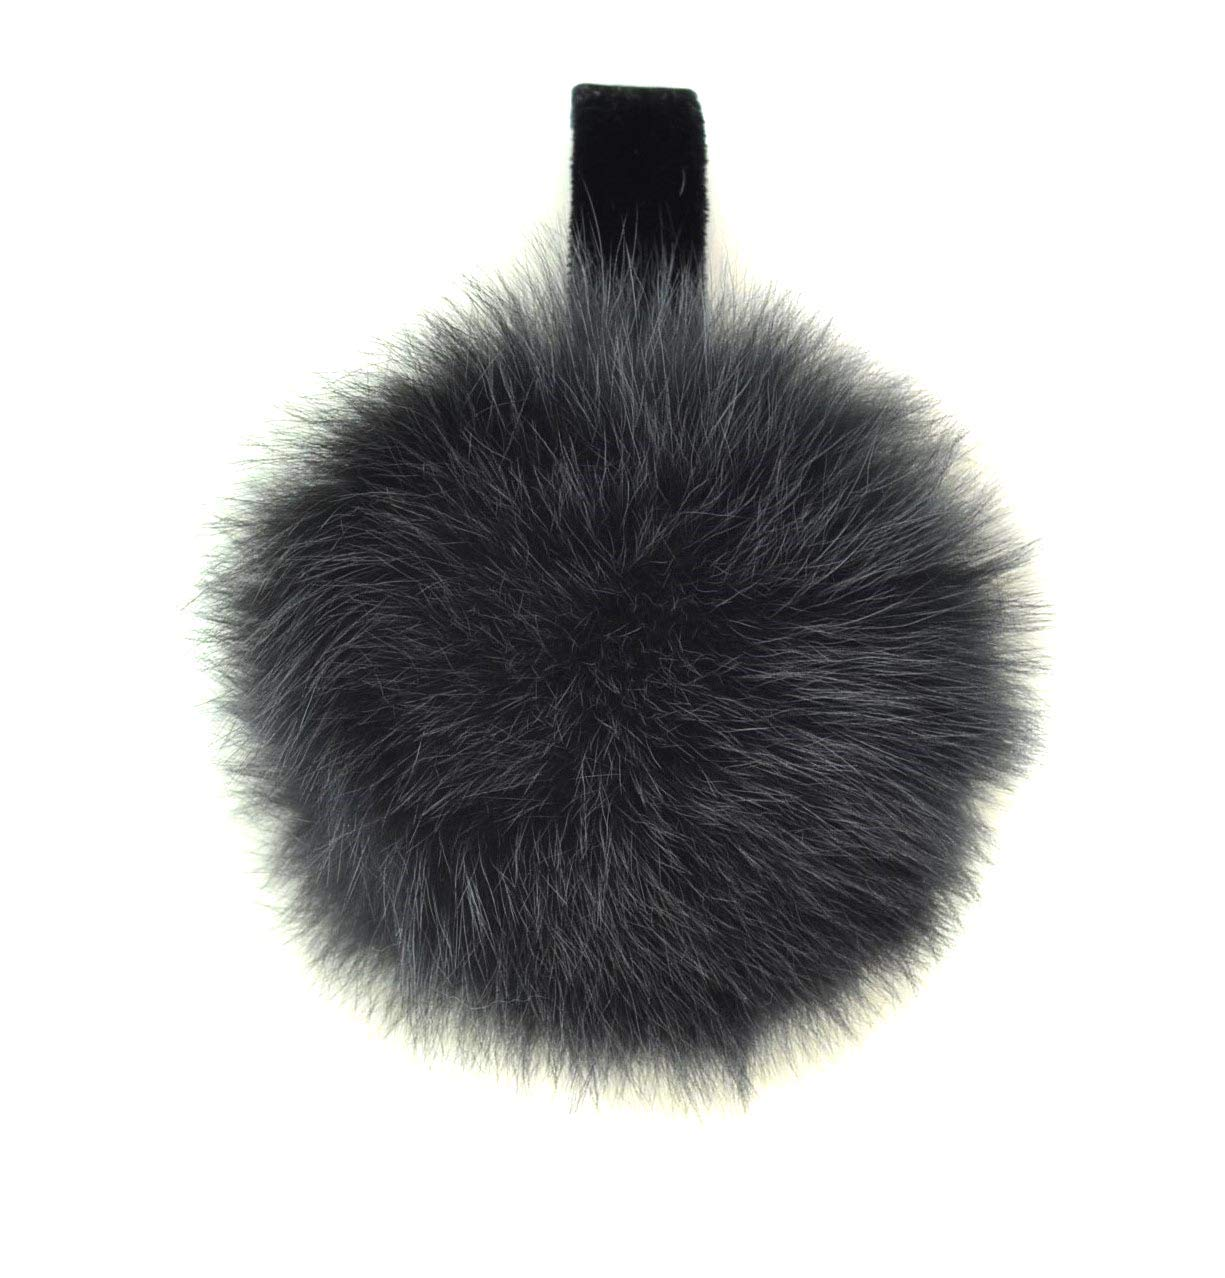 Surell Genuine Soft Grey Coyote Fur Earmuffs with Non Adjustable Velvet Head Band Winter Fashion Ear Warmers, Perfect Elegant Women's Luxury Gift